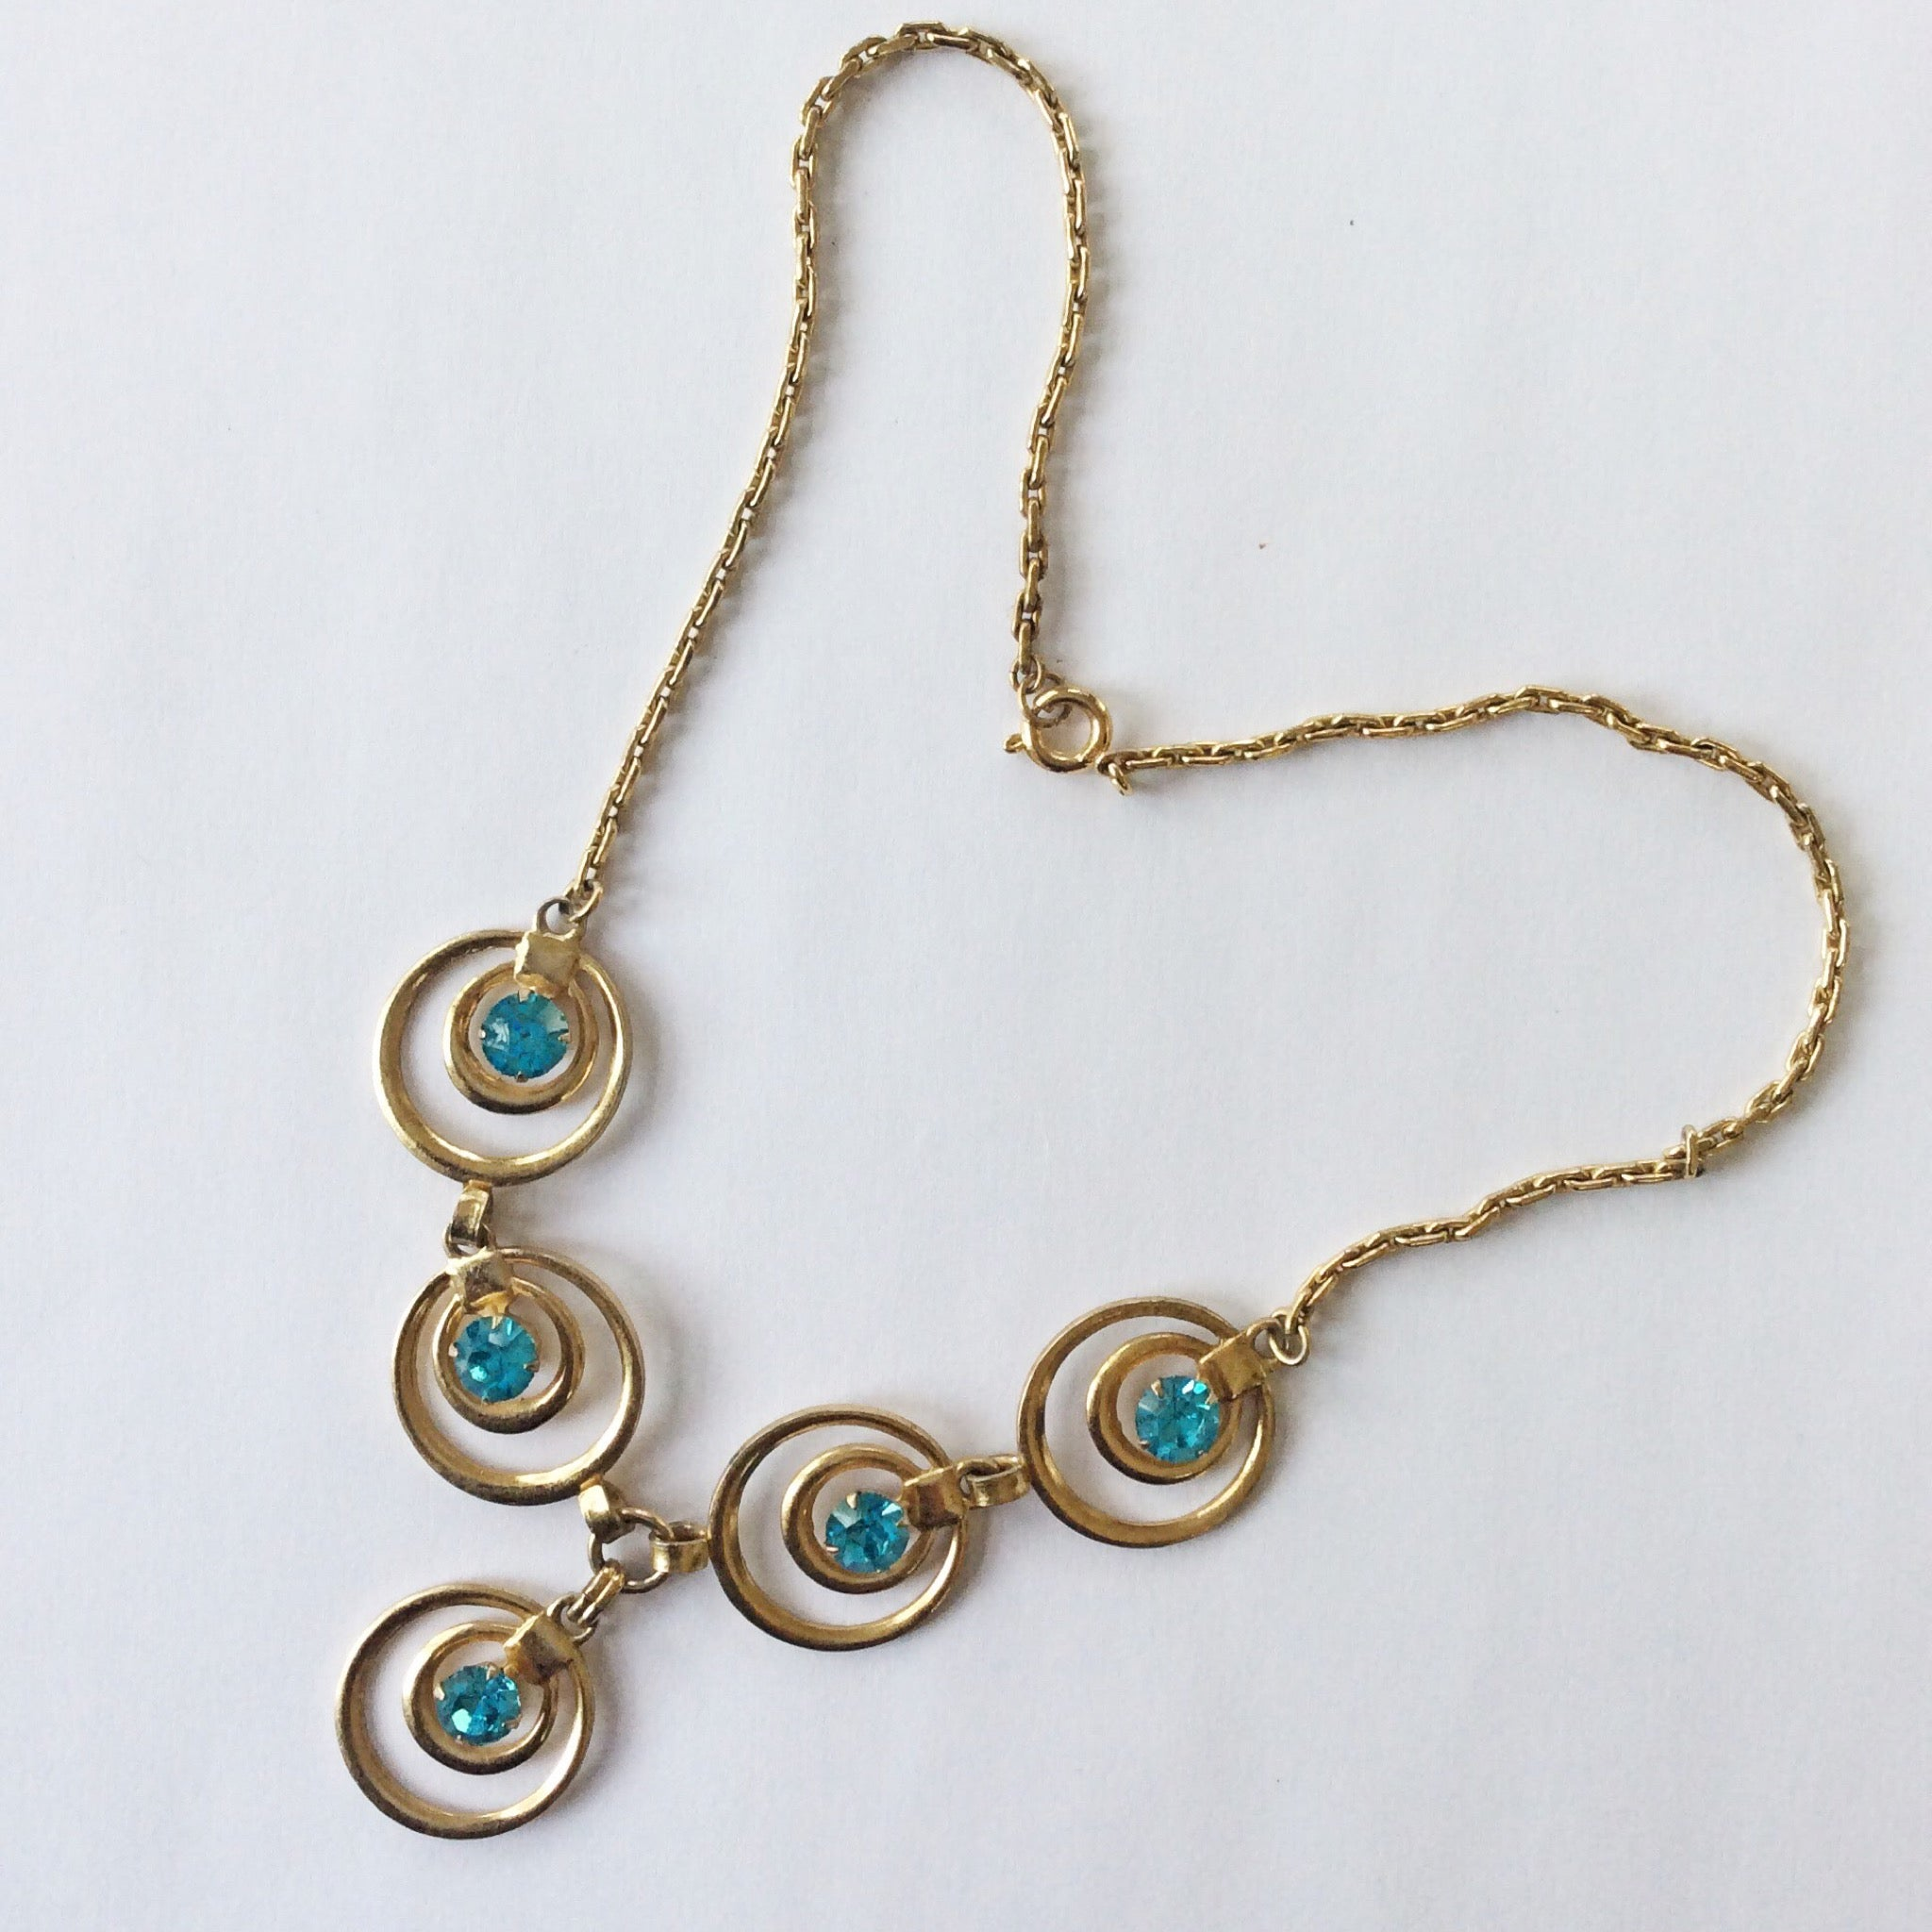 40s Retro Rhinestone Necklace